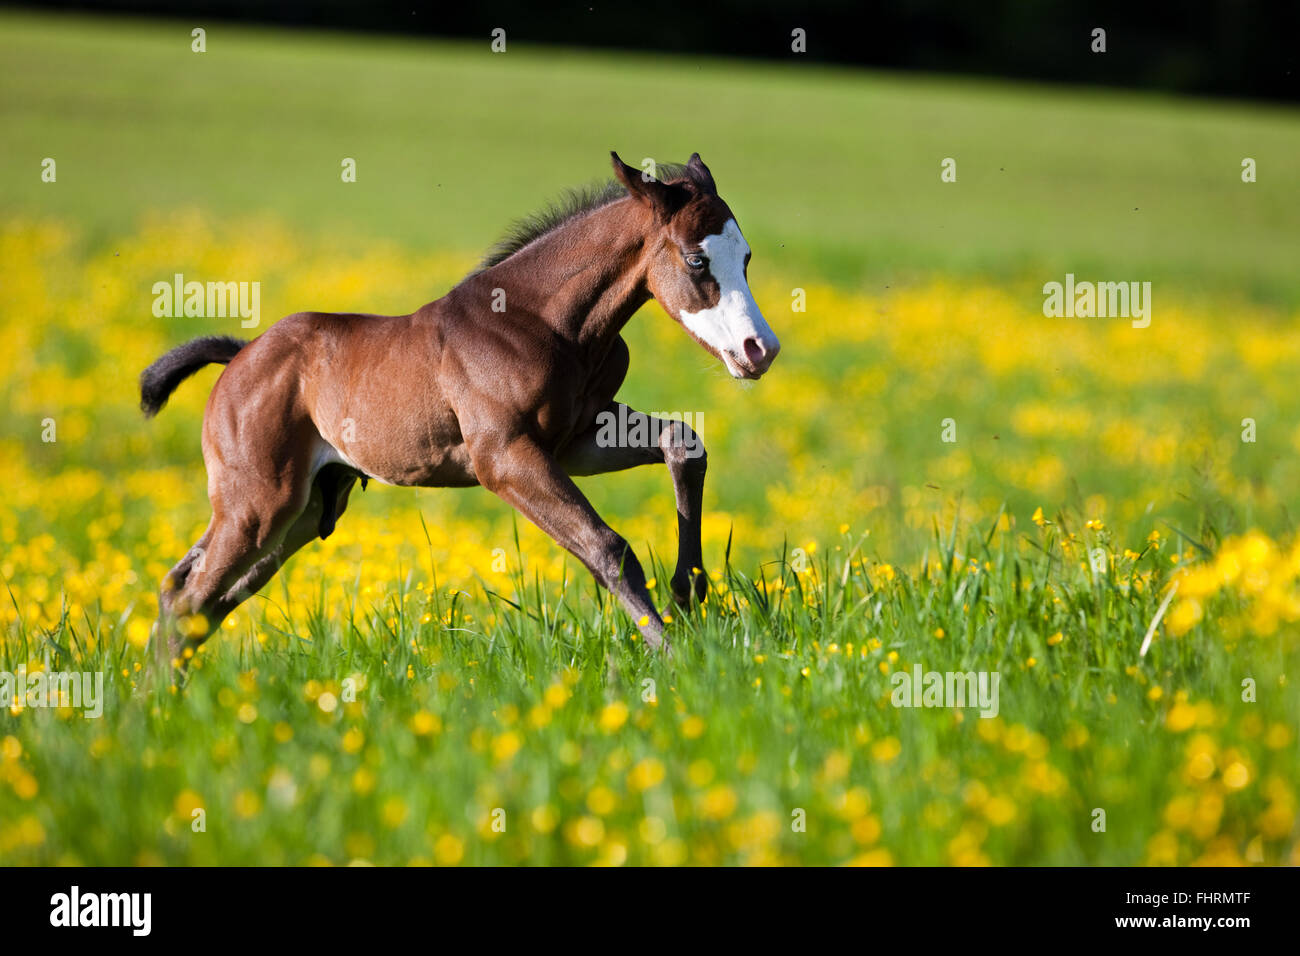 Paint Horse, bay horse, foal gallops through flower meadow - Stock Image